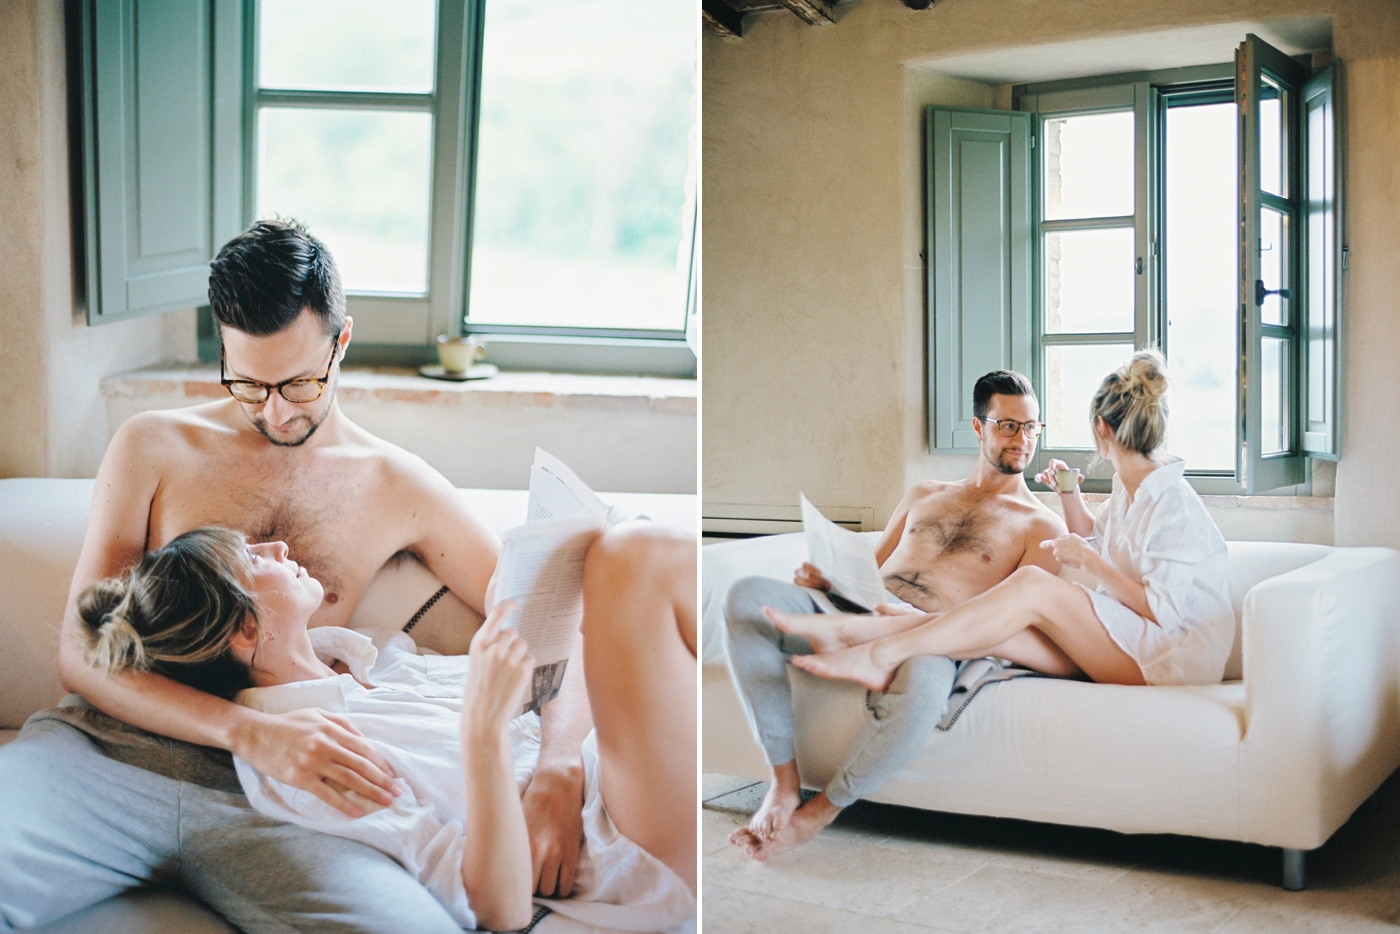 In home lifestyle session | Luxury villa in tuscany italy | fine art film wedding photographer justine milton | travel and fashion blogger